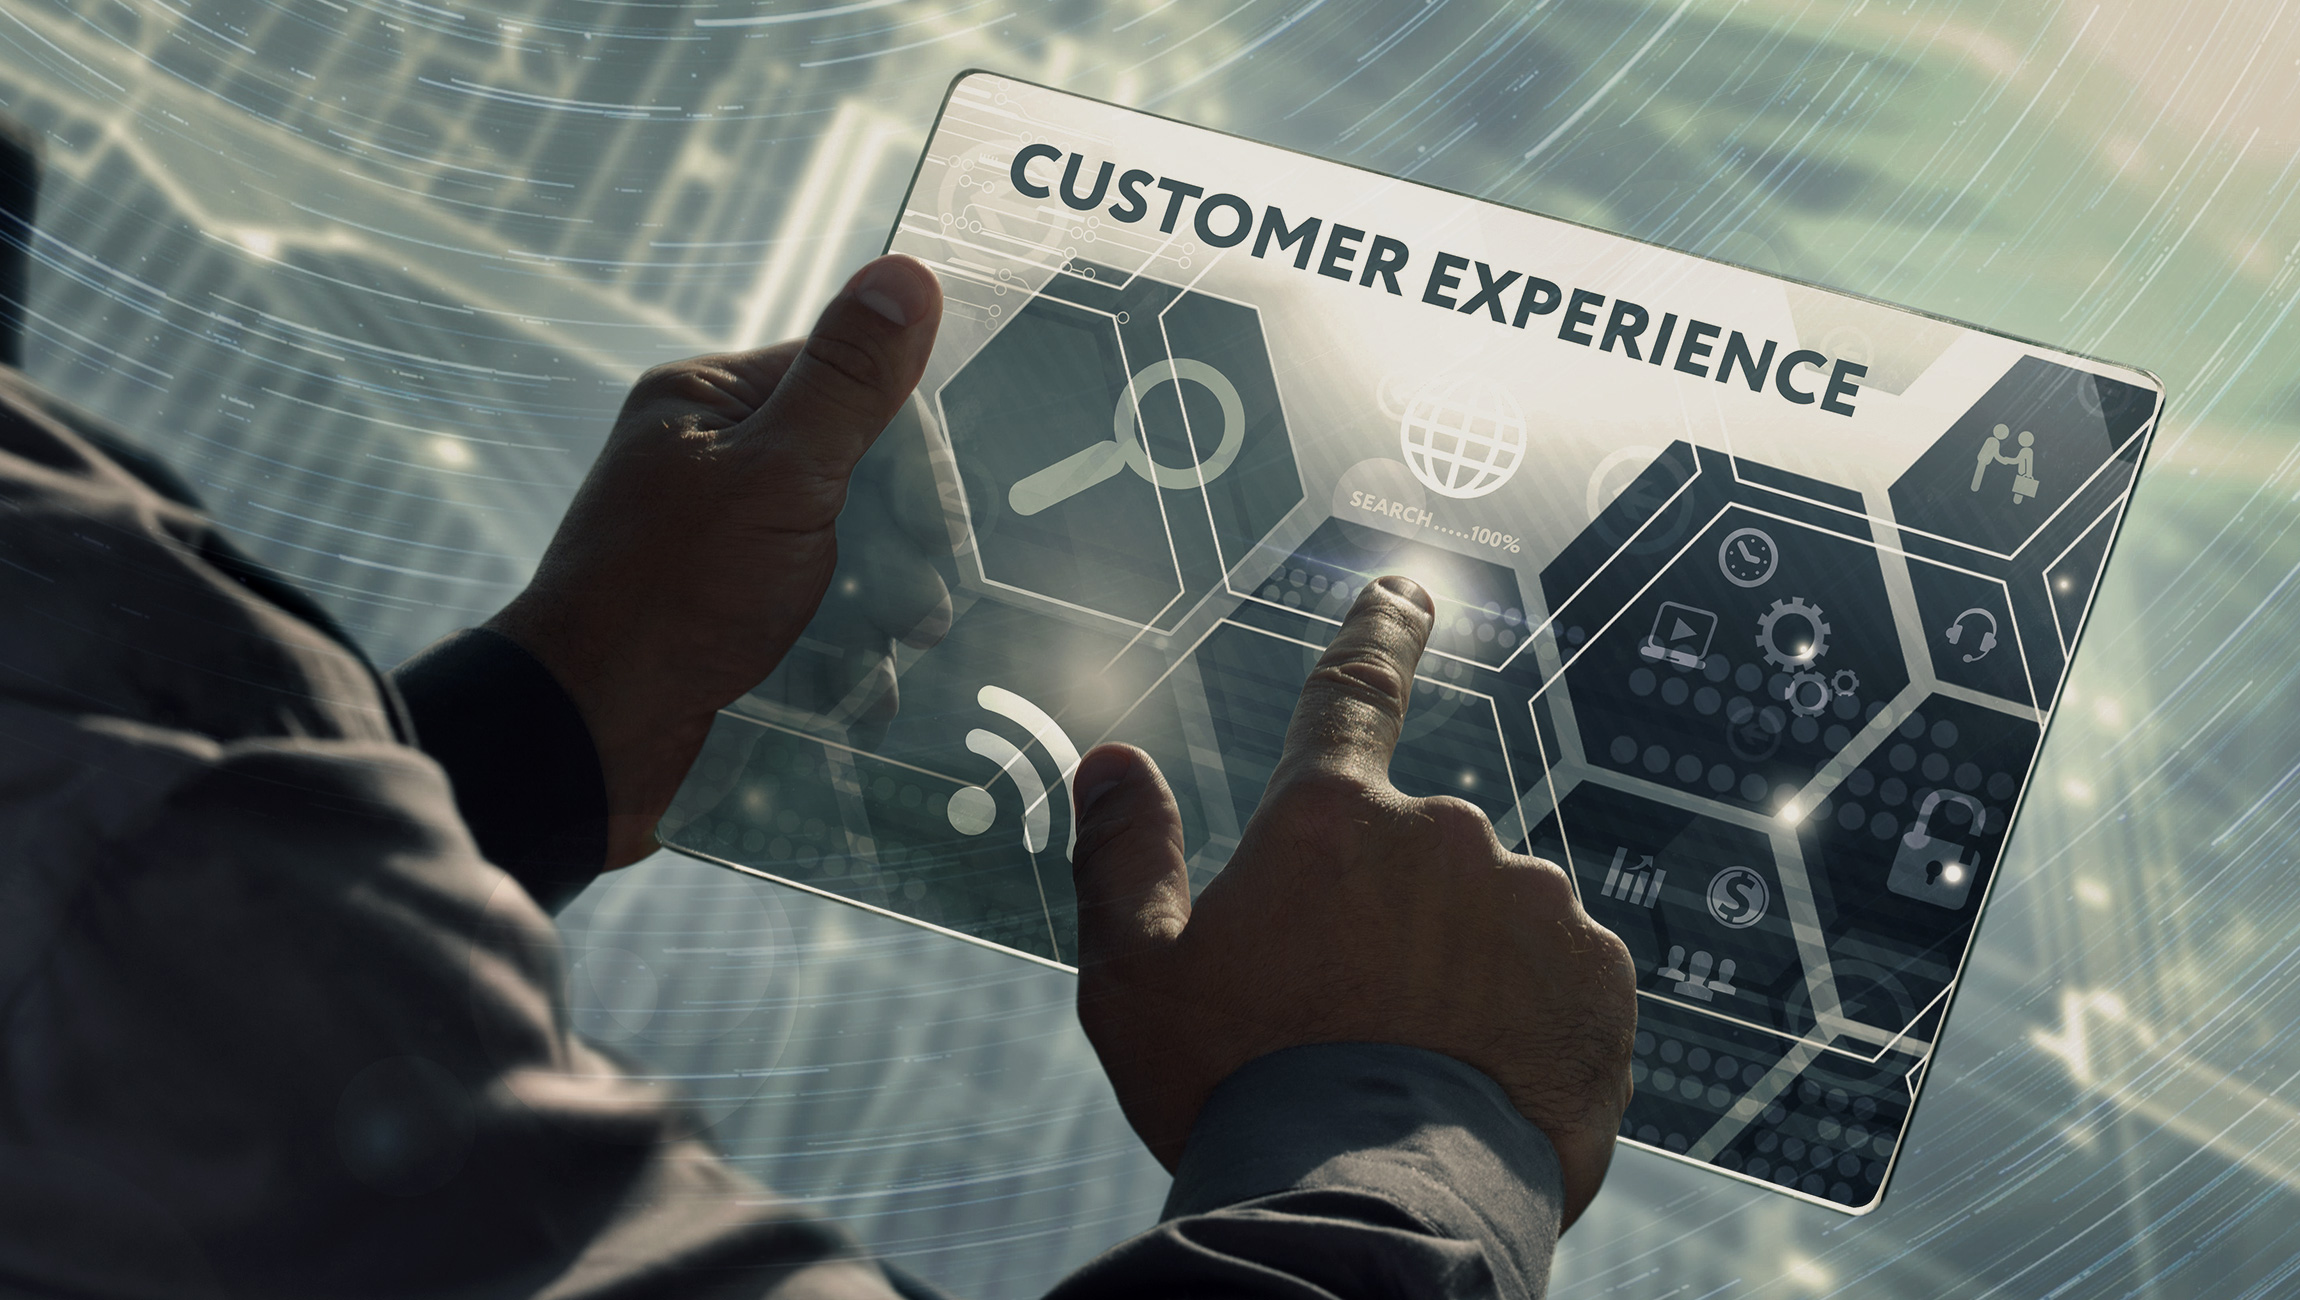 How Direct-To-Consumer Brands Can Build a Superior CX - MarTech Series